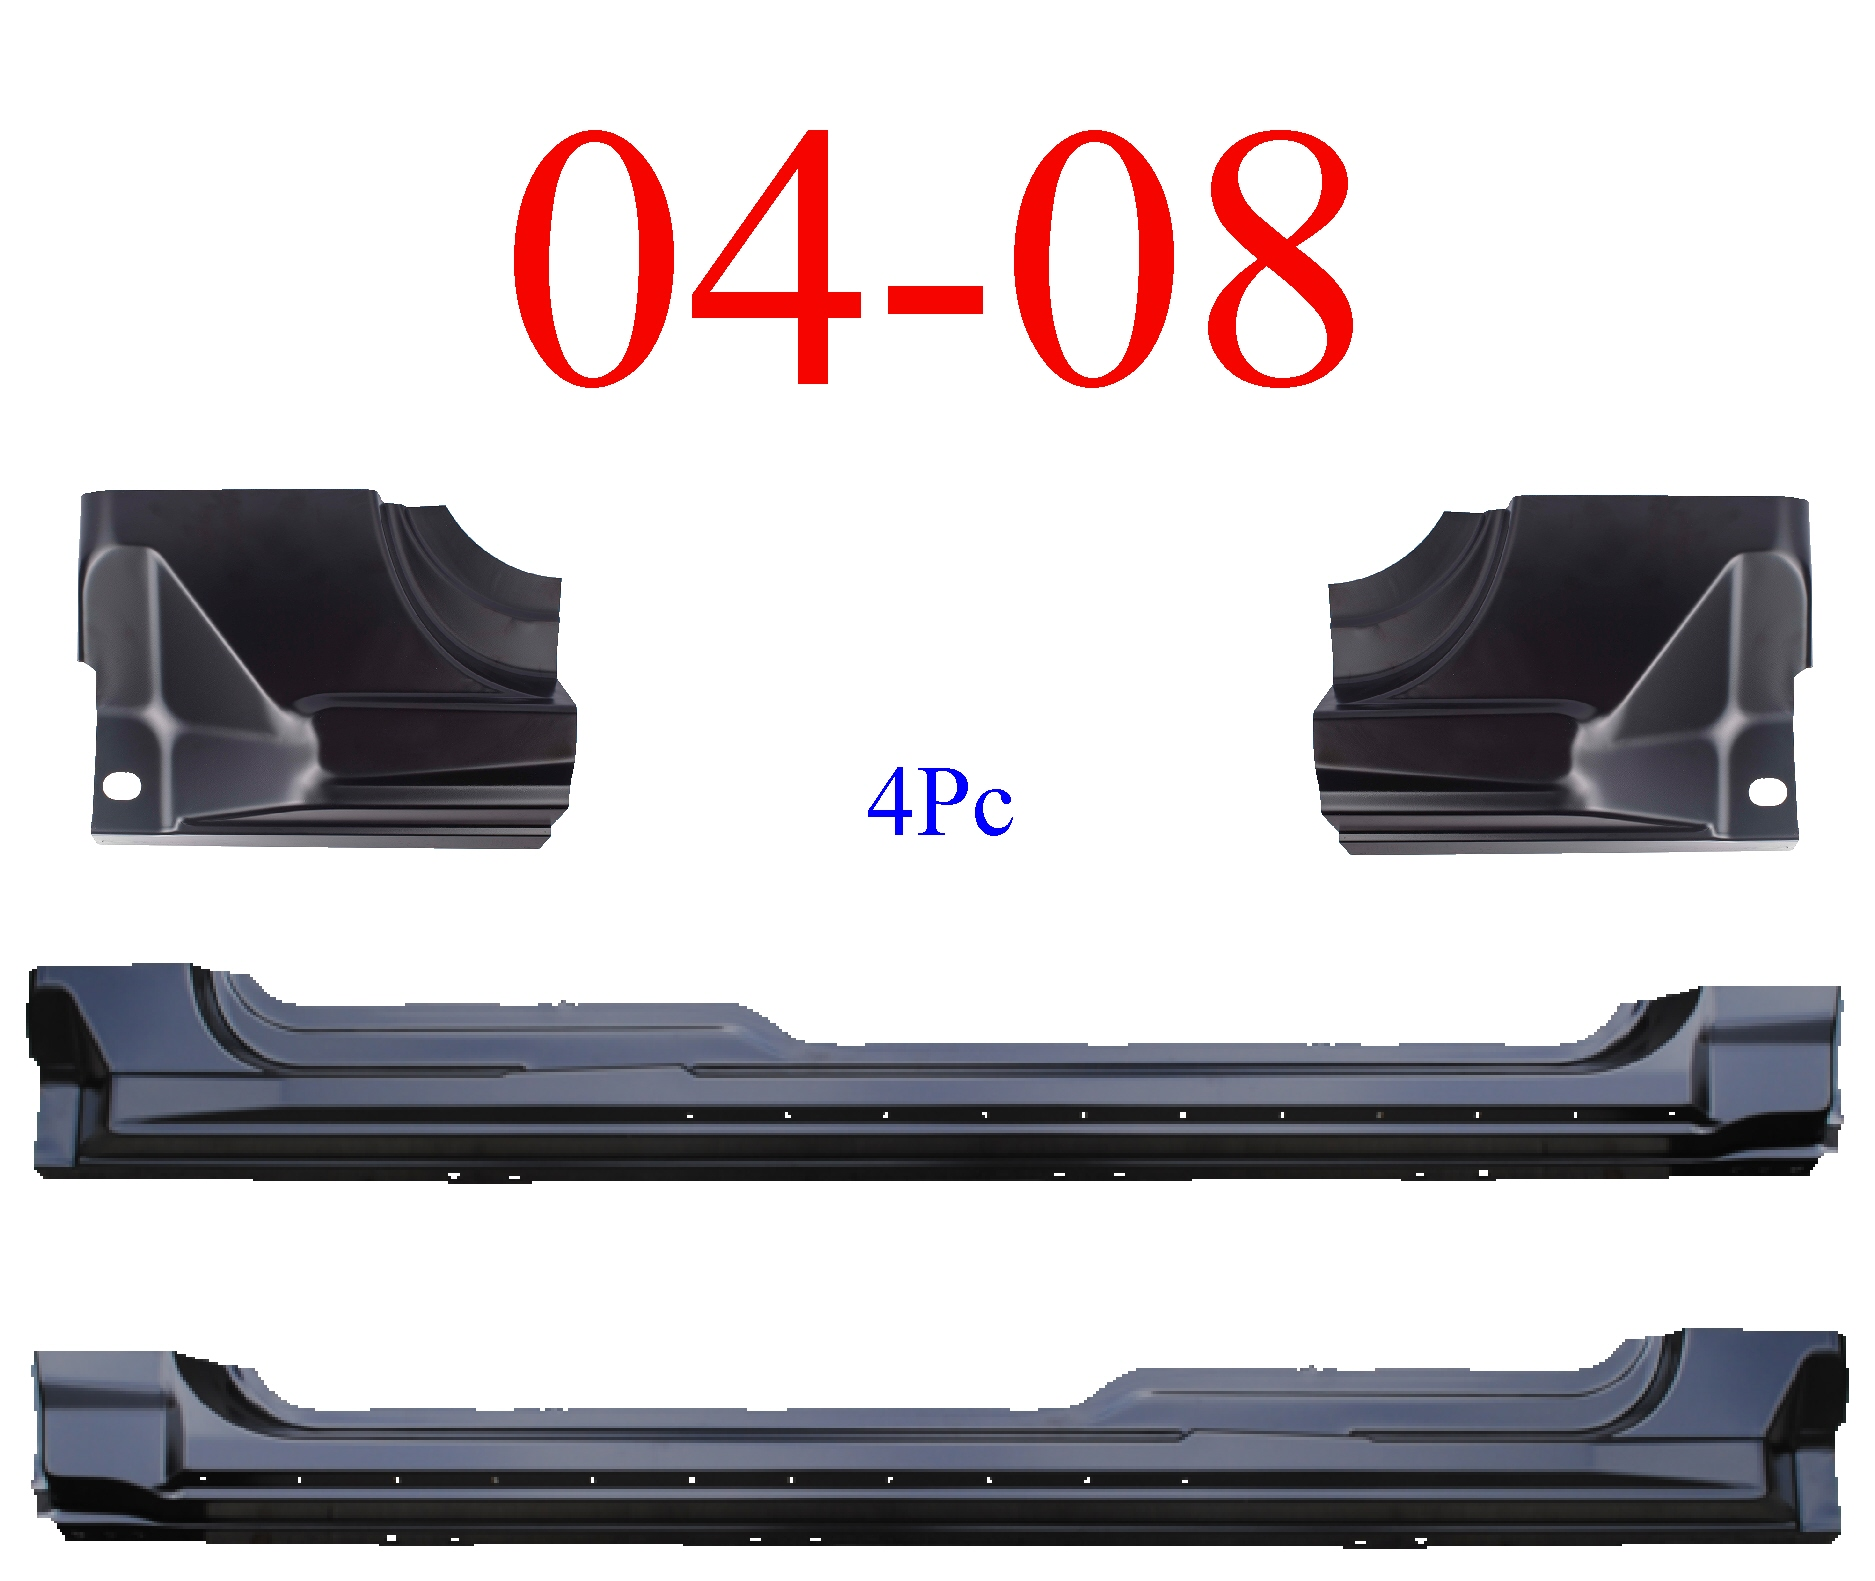 04-08 F150 4Pc Super Cab Extended Rocker & Super Cab Corner Set